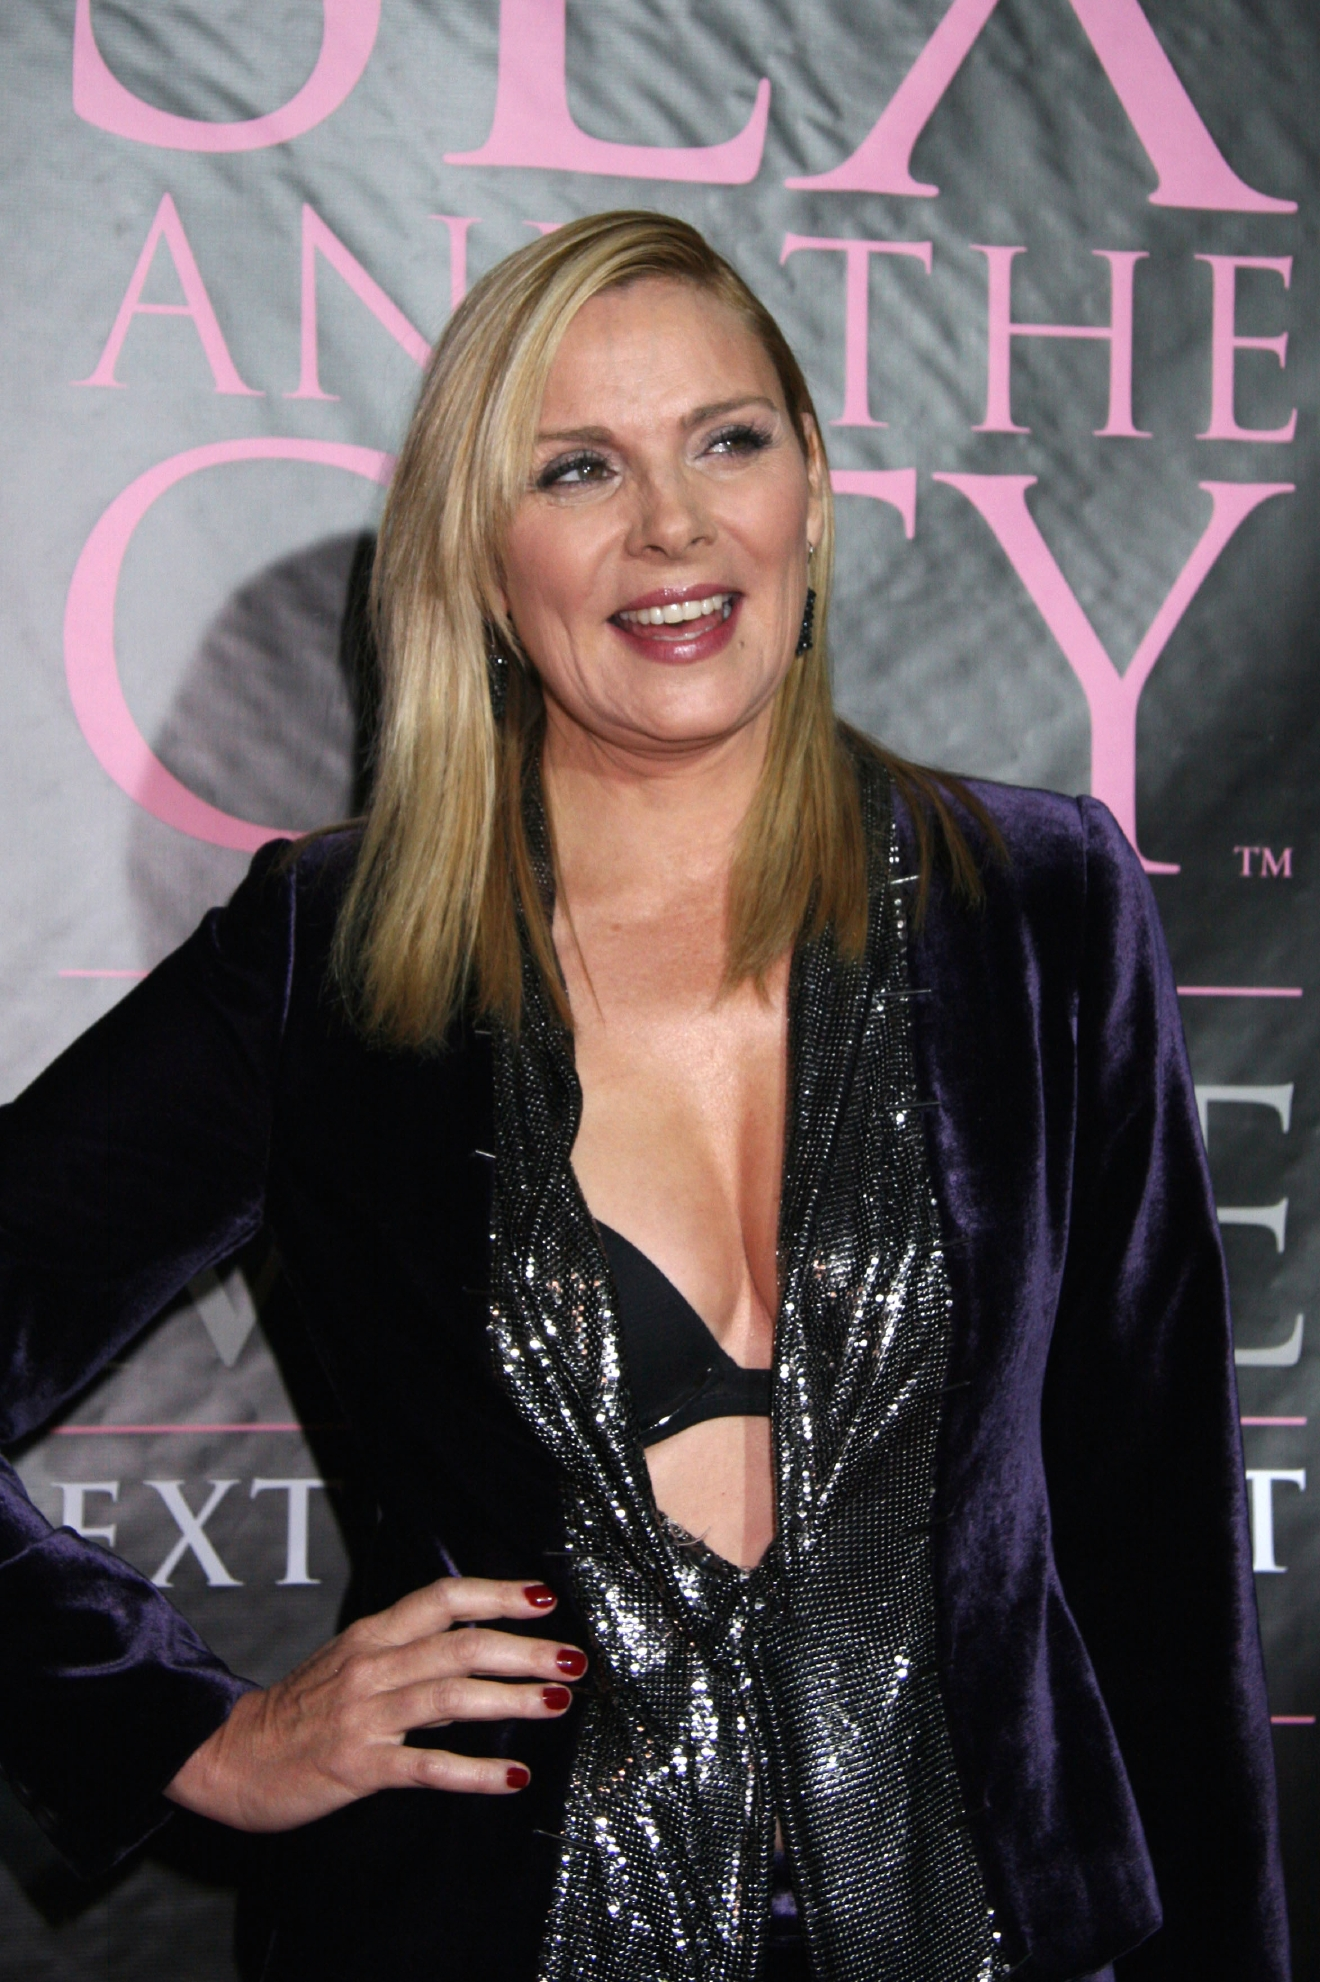 Kim Cattrall                  'Sex and the City: The Movie' DVD Launch at The New York Public Library - Arrivals                                    Featuring: Kim Cattrall                  Where: New York City, United States                  When: 19 Sep 2008                  Credit: Michael Carpenter / WENN